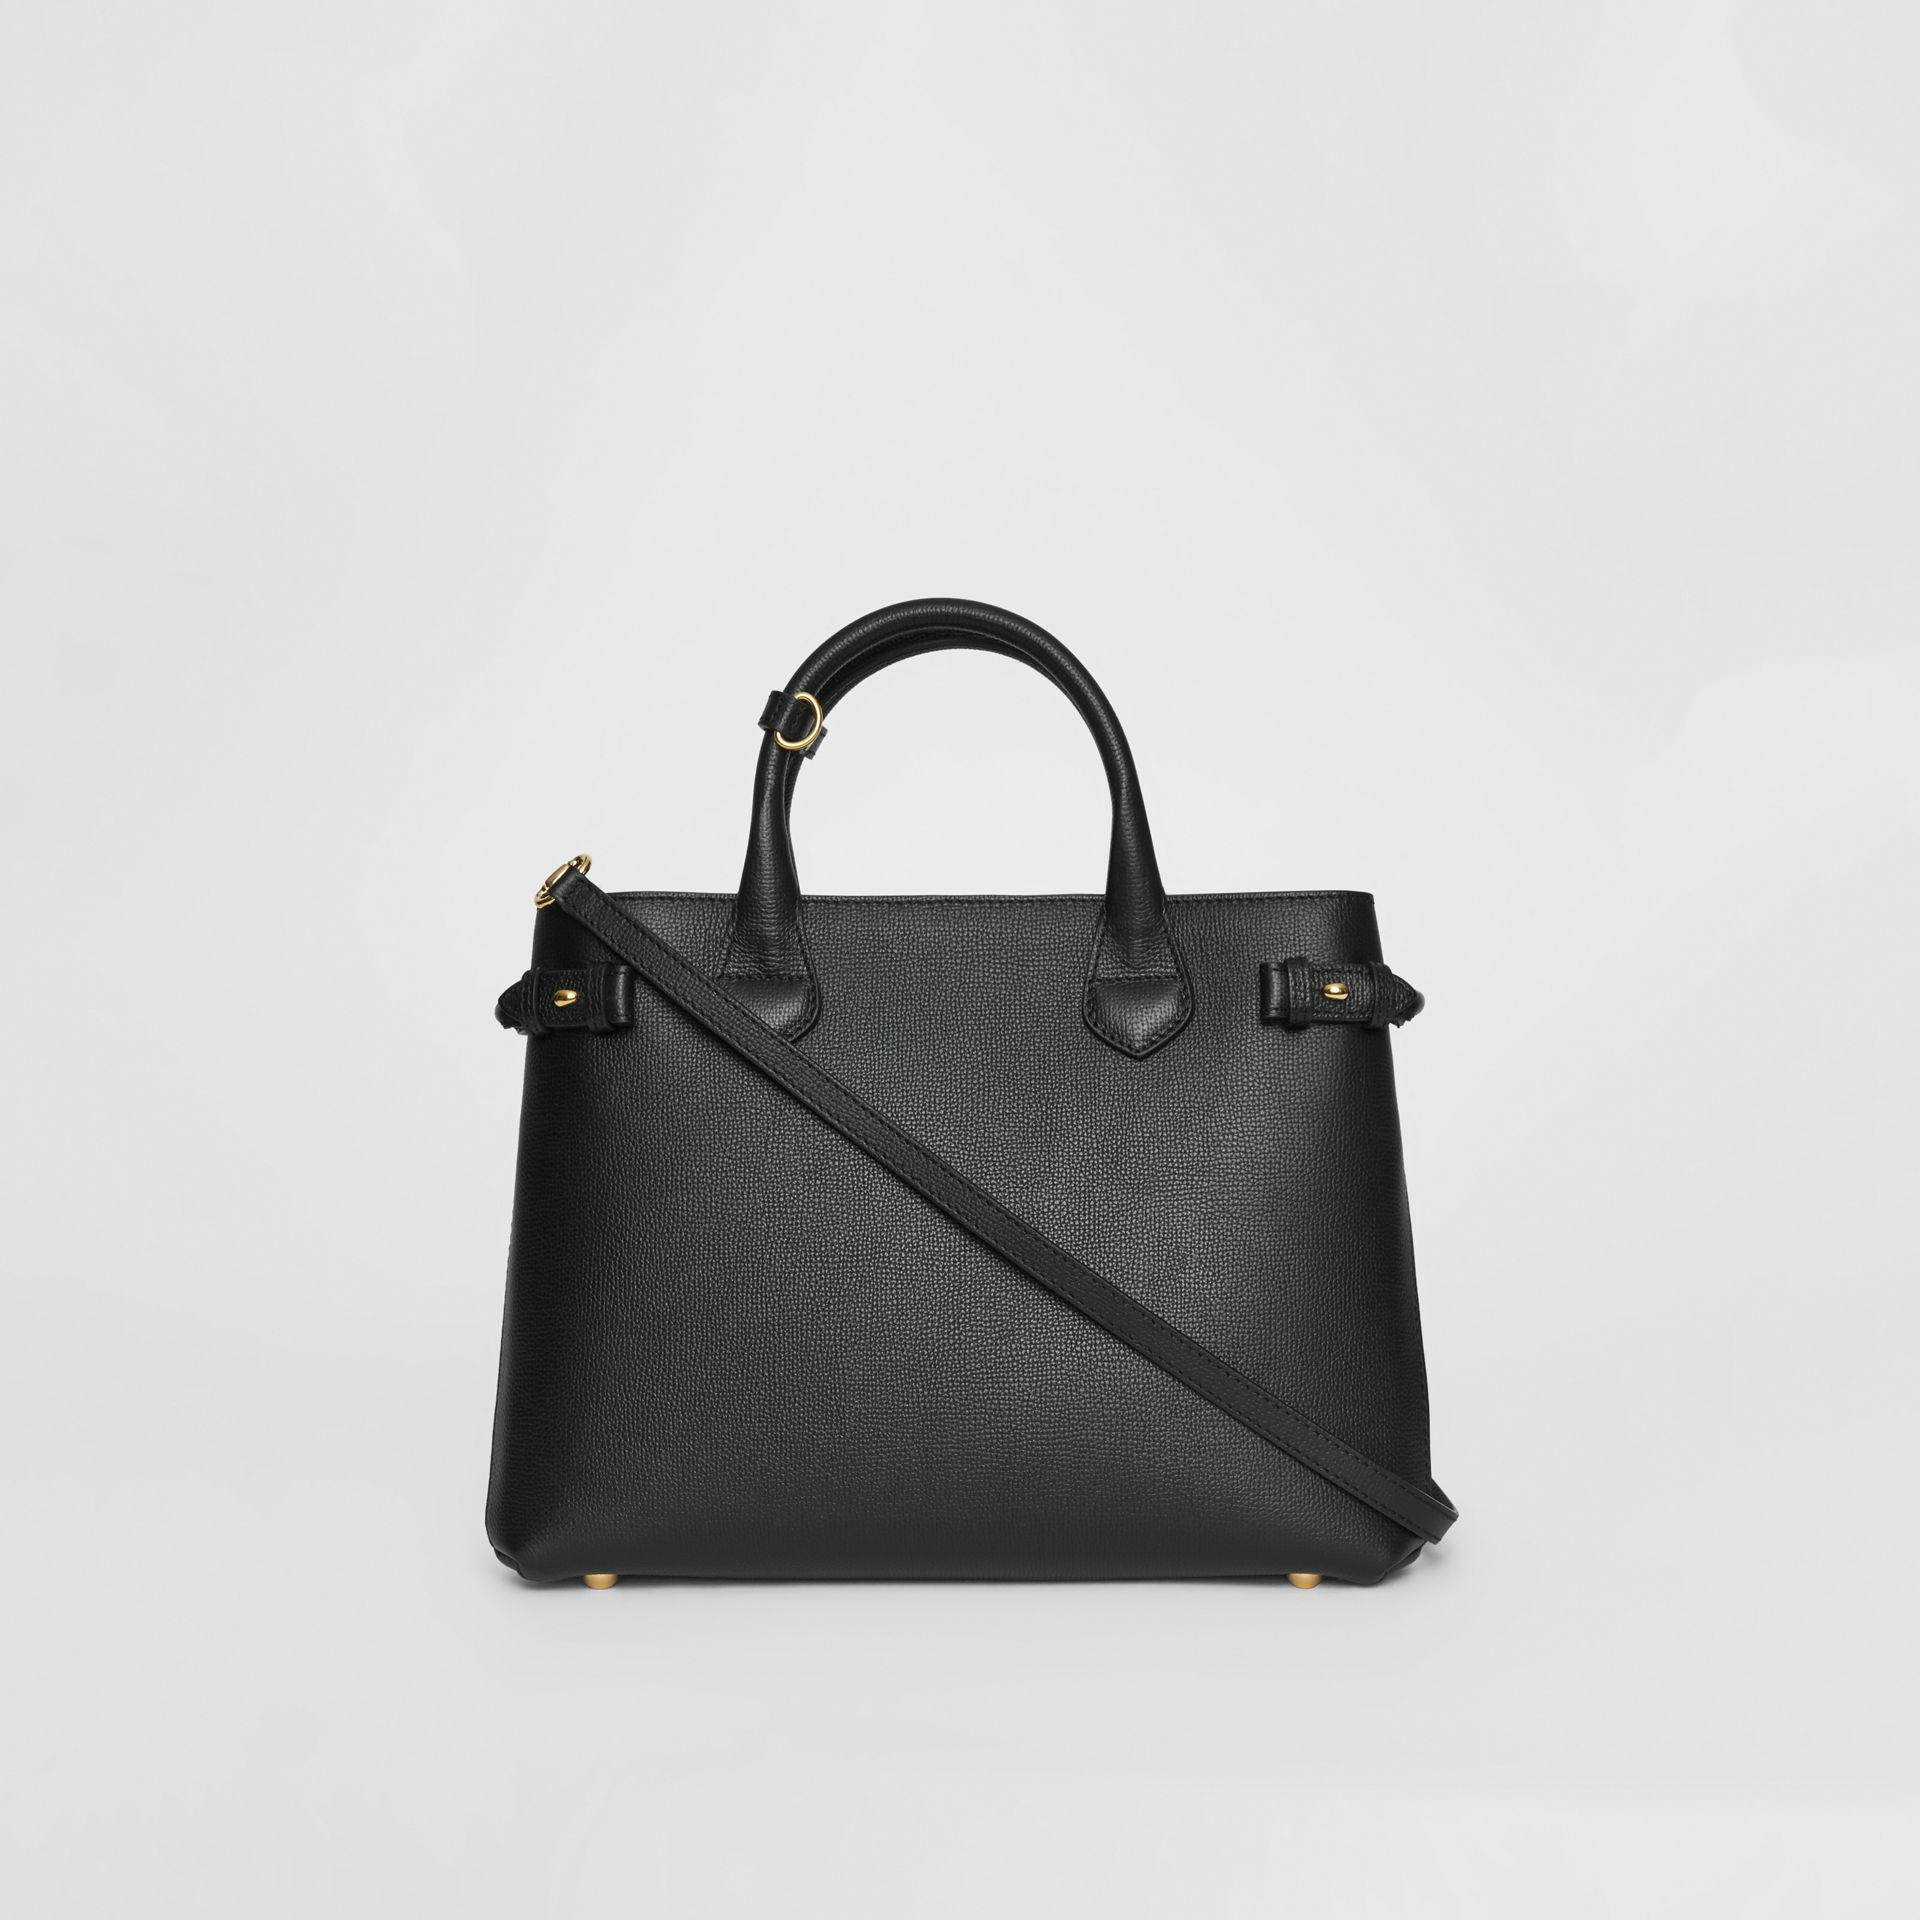 Burberry The Medium Banner In Leather And House Check Black - Lyst cd418ce69a